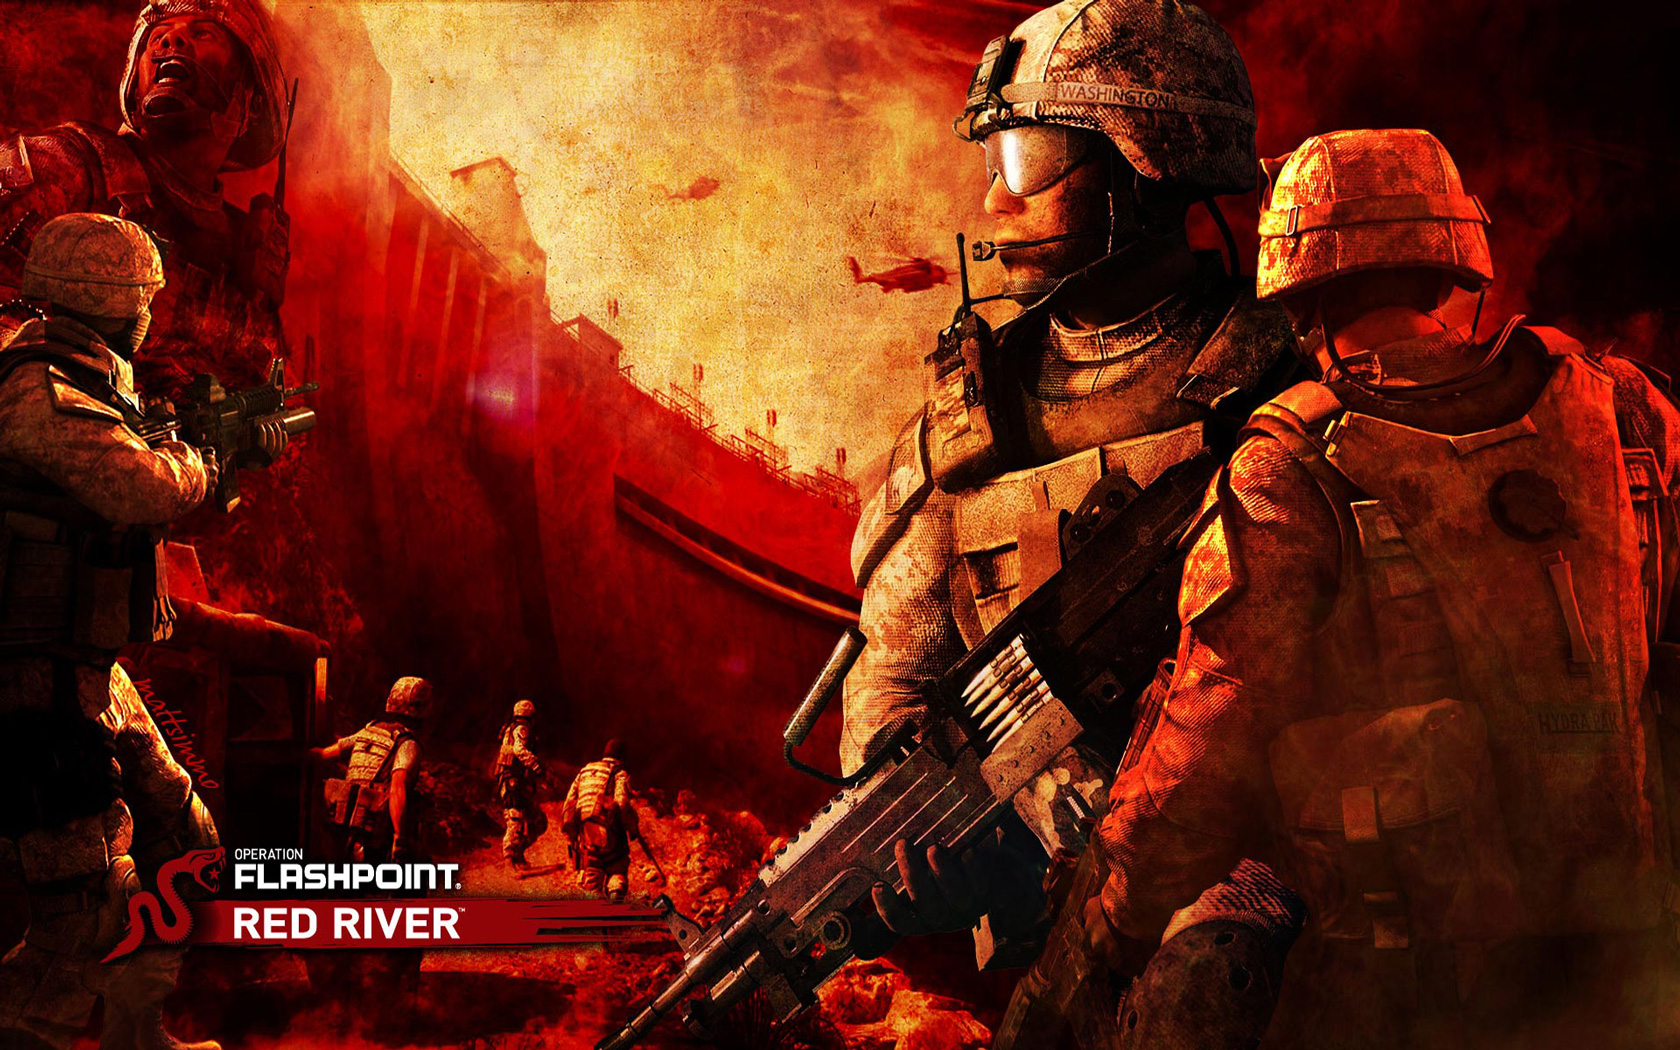 Operation Flashpoint: Red River Wallpaper in 1680x1050